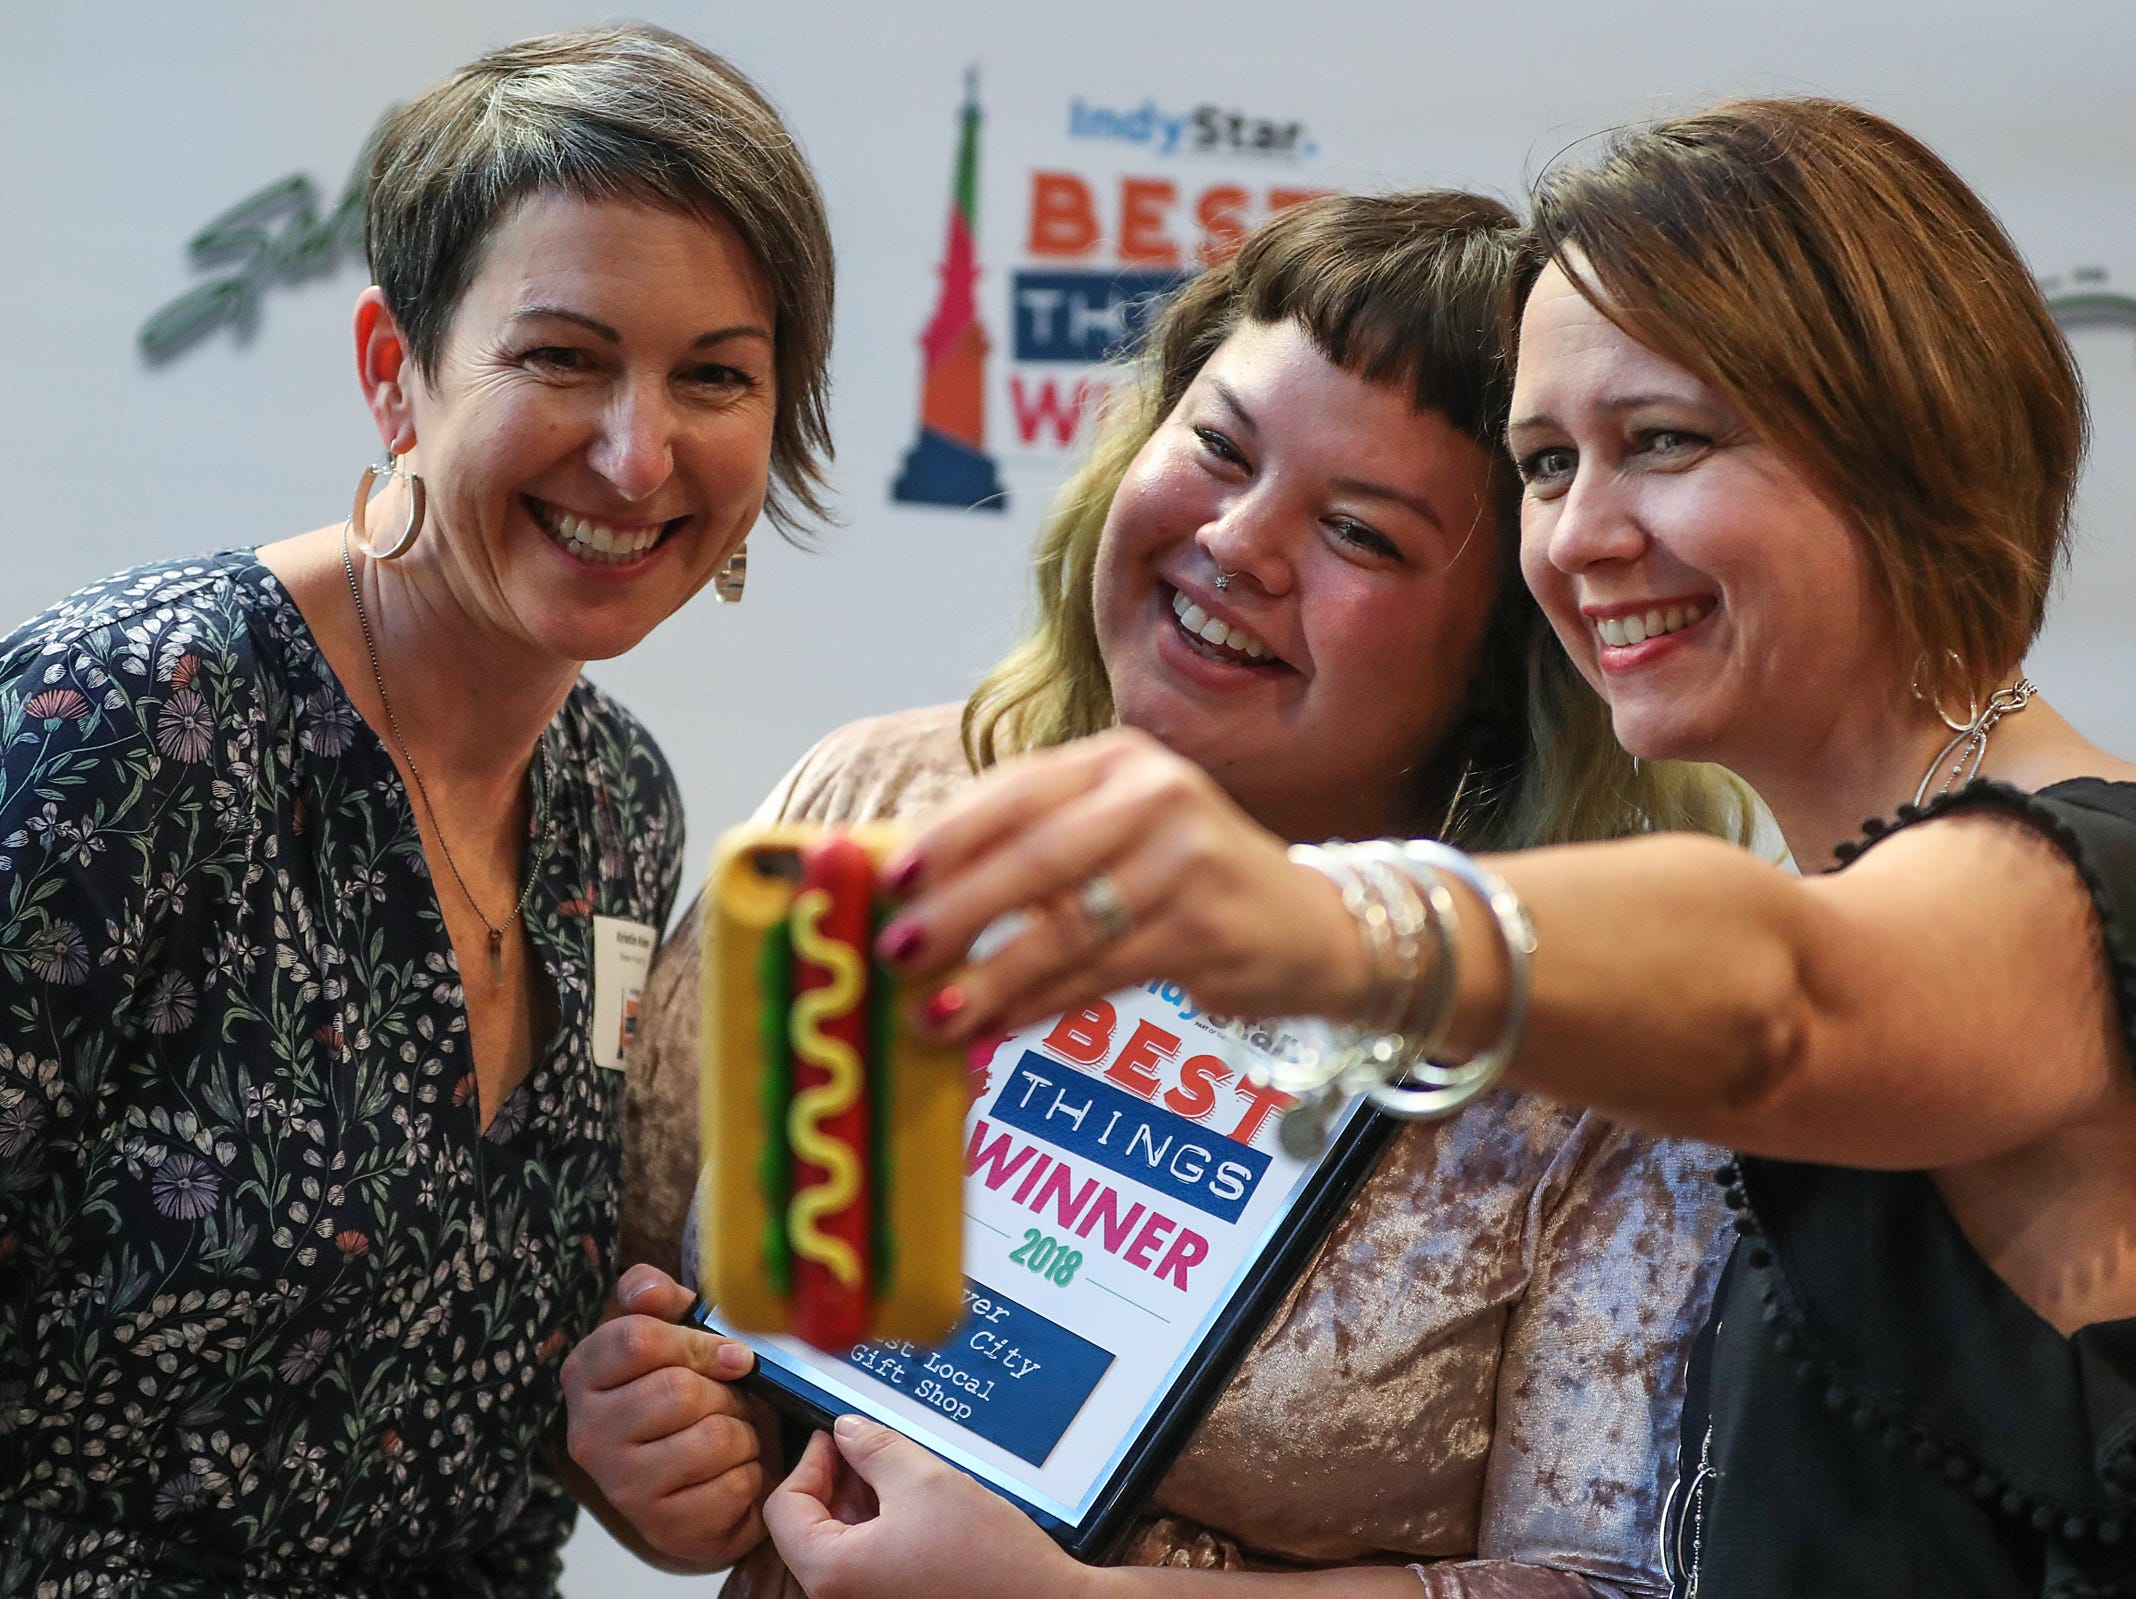 From left, Kristin Kohn, Shea Rodriguez and Julie Johnson from Silver in the City celebrate their win during the inaugural Best Things Indy 2018 award ceremony, held by IndyStar at One America Tower in Indianapolis, Thursday, Sept. 27, 2018.